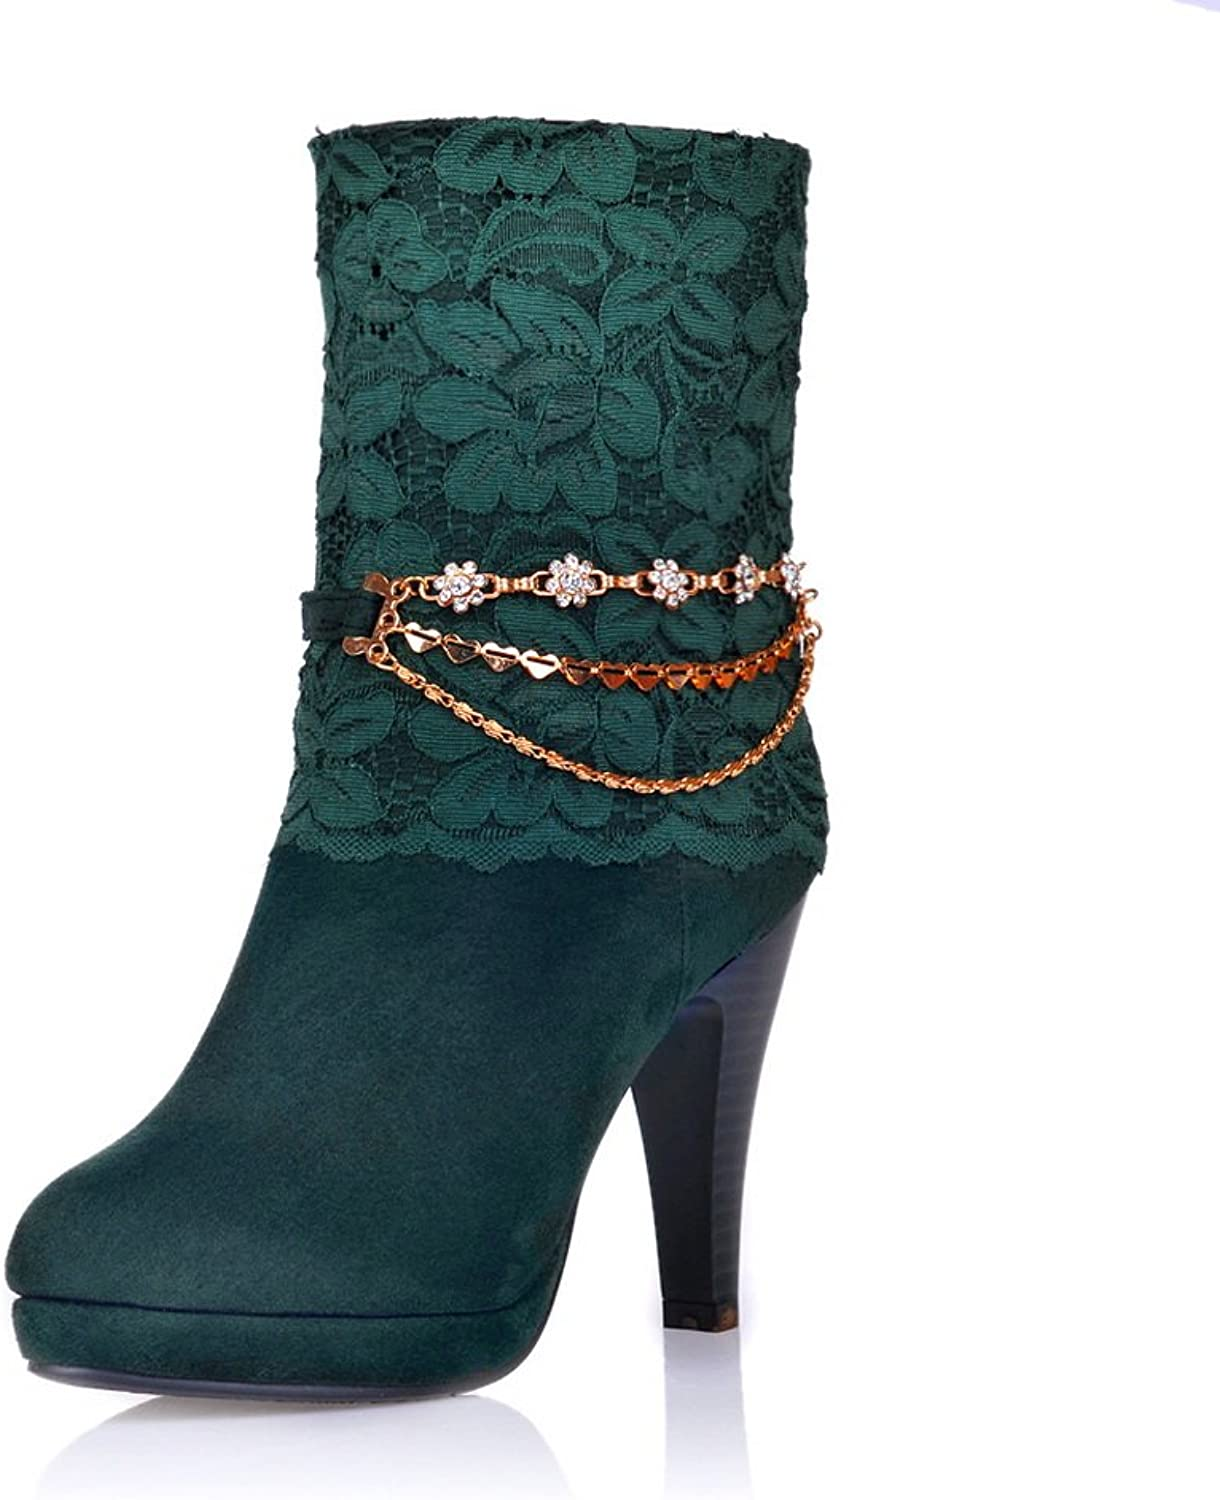 QueenFashion Women's Stiletto Solid Lace Ankle Boots with Rhinestones and Metal Chains